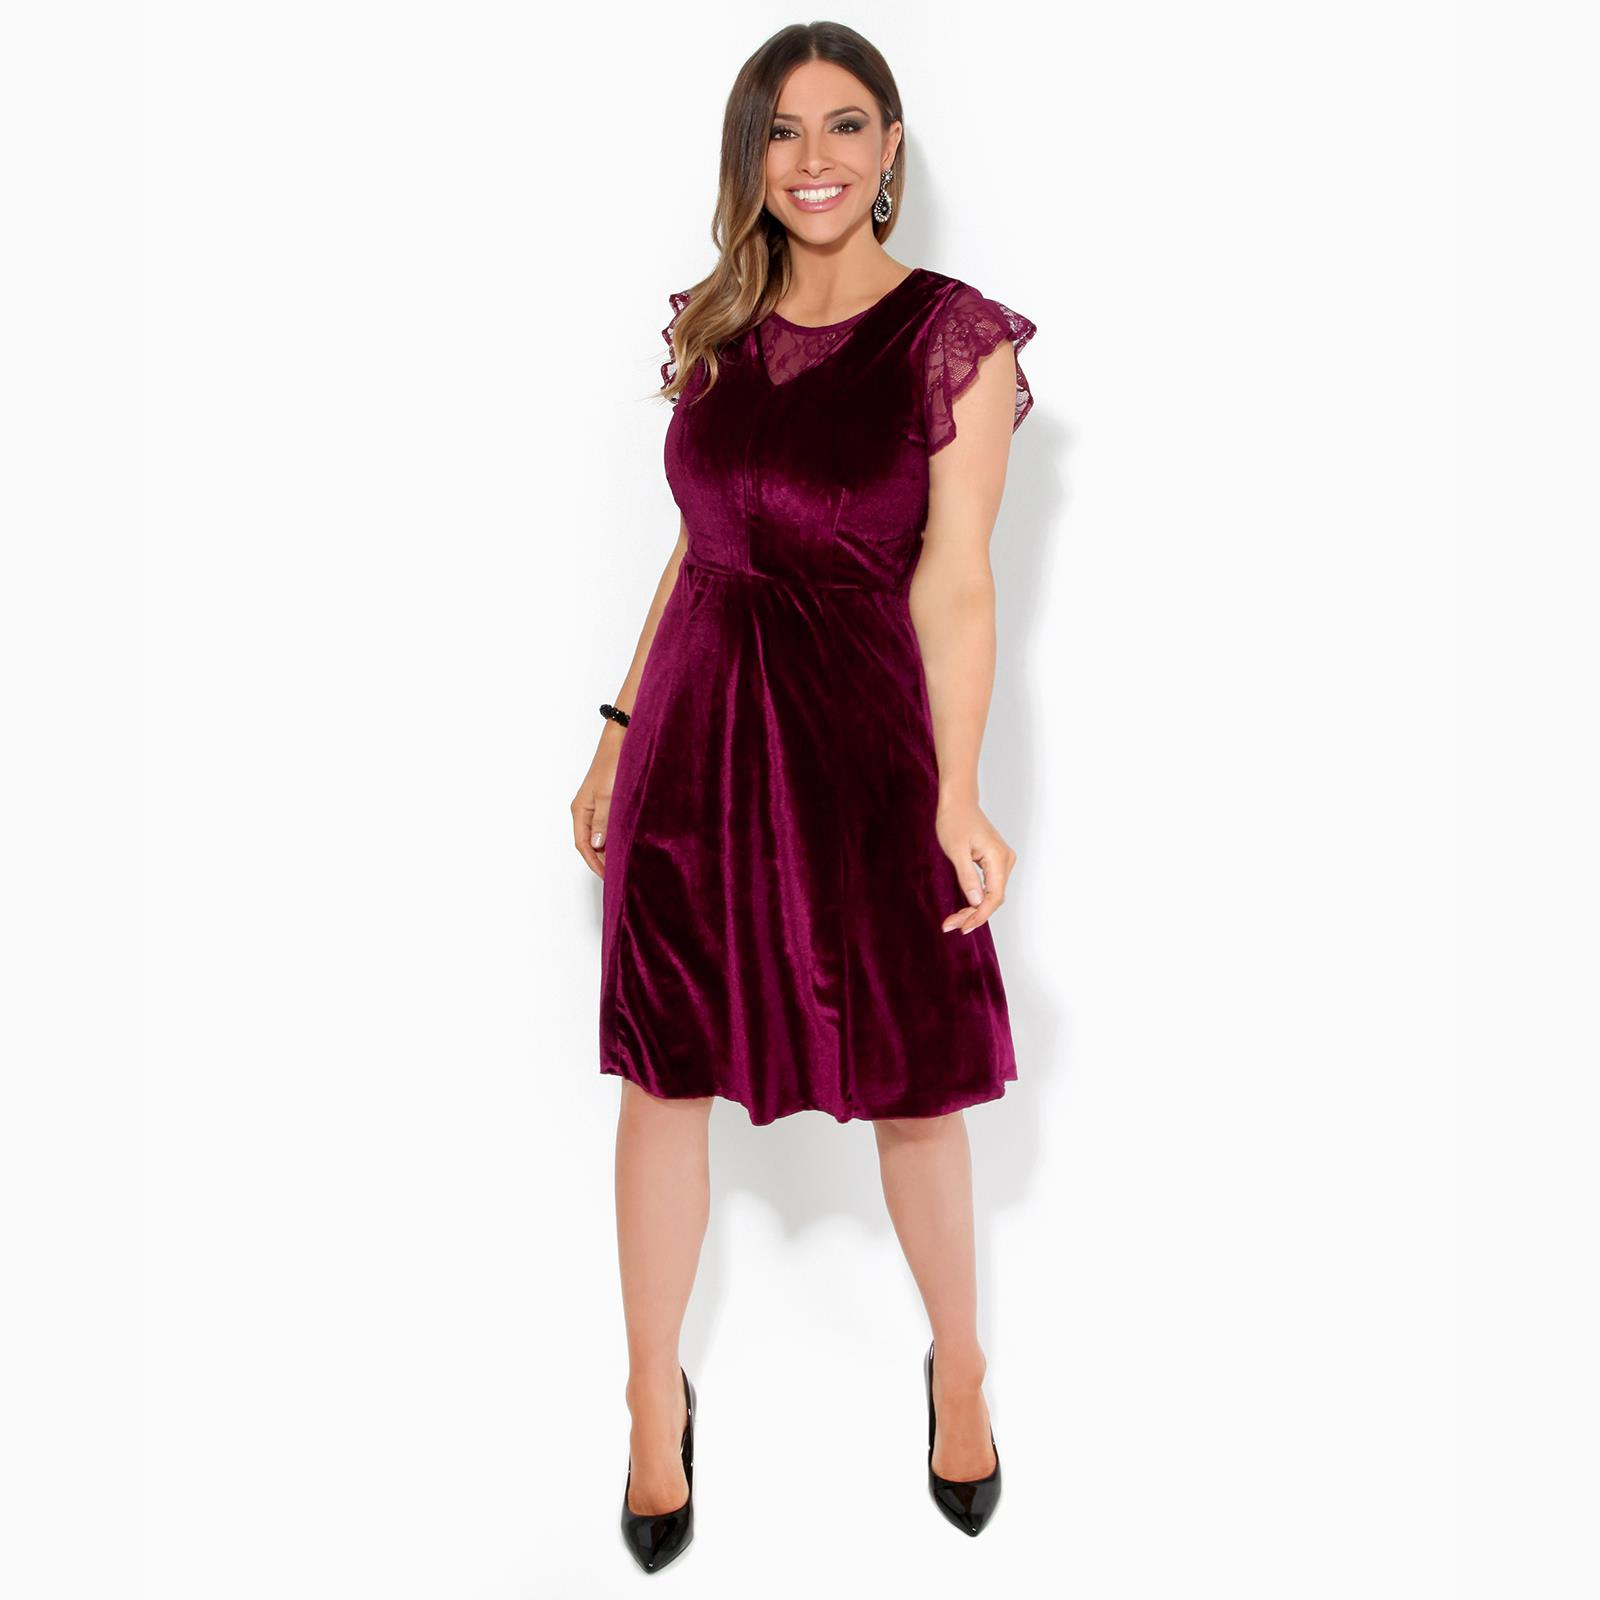 Women-Ladies-Lace-Velvet-Party-Midi-Skater-Dress-Stretch-Fit-Flared-Sexy-Evening thumbnail 9